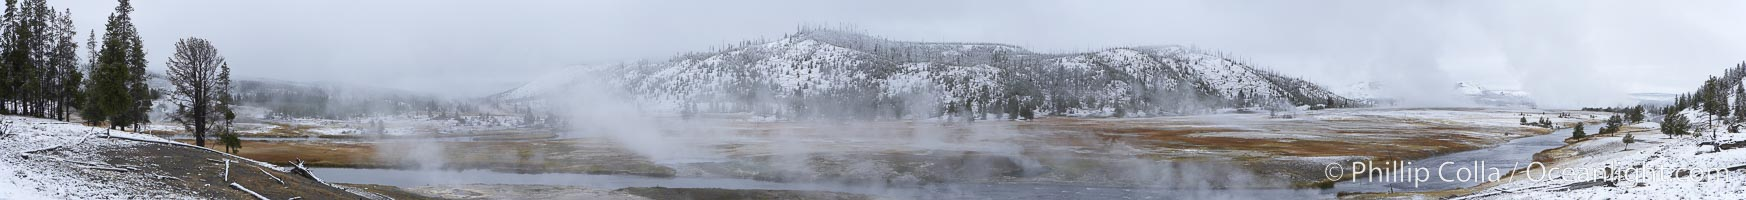 Firehole River, natural hot spring water steaming in cold winter air, panorama, Midway Geyser Basin. Midway Geyser Basin, Yellowstone National Park, Wyoming, USA, natural history stock photograph, photo id 22454